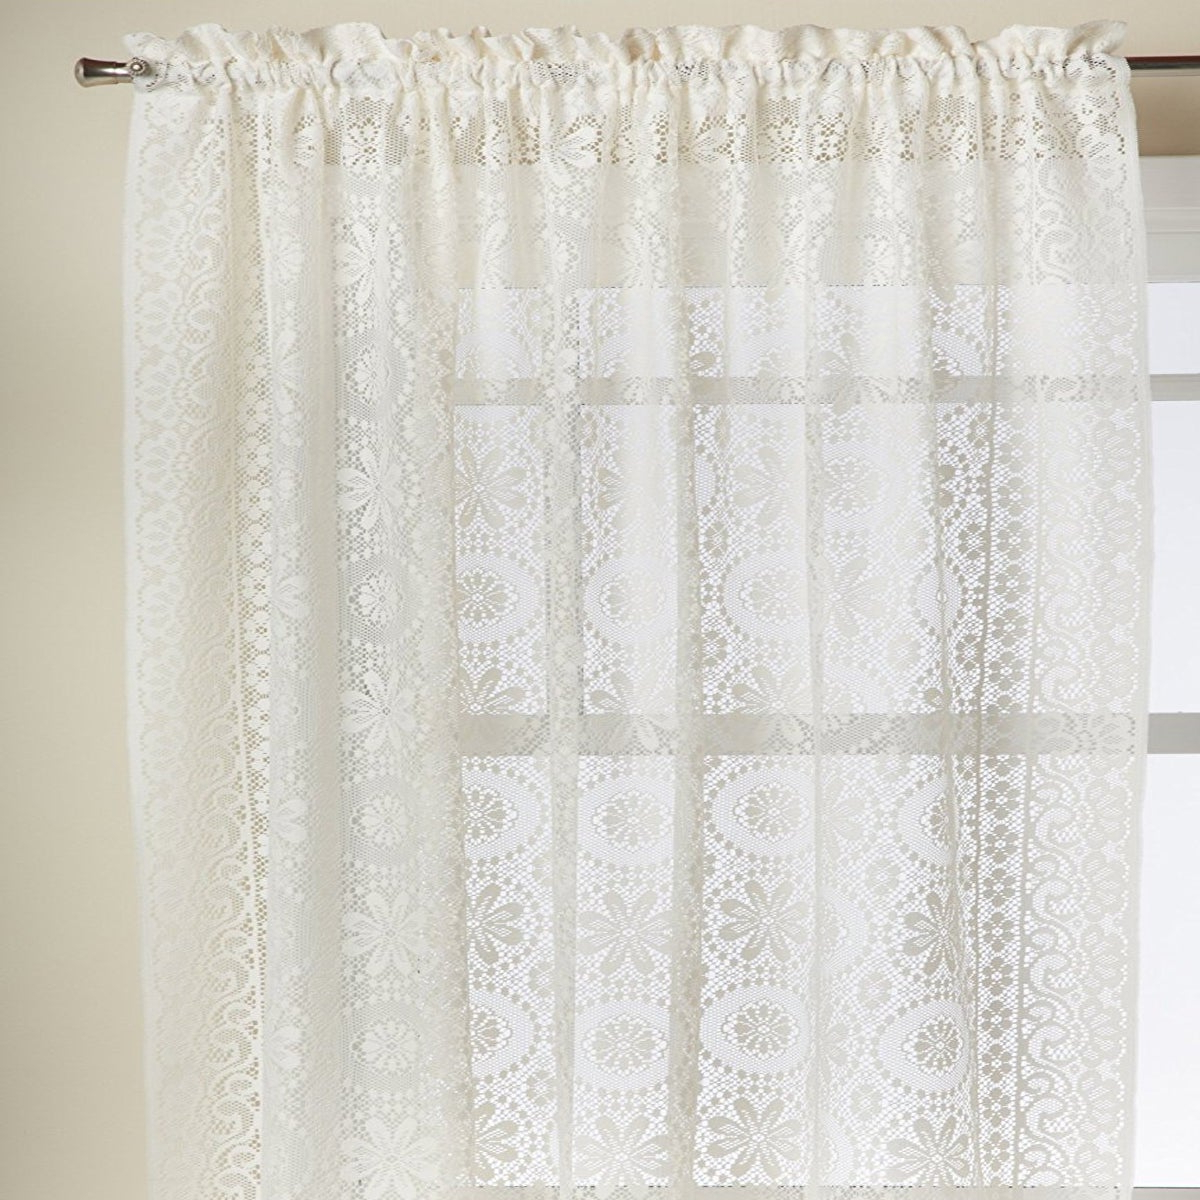 Luxurious Old World Style Lace Window Curtain Panels Regarding Most Recent Luxurious Old World Style Lace Window Curtain Panel (View 3 of 20)